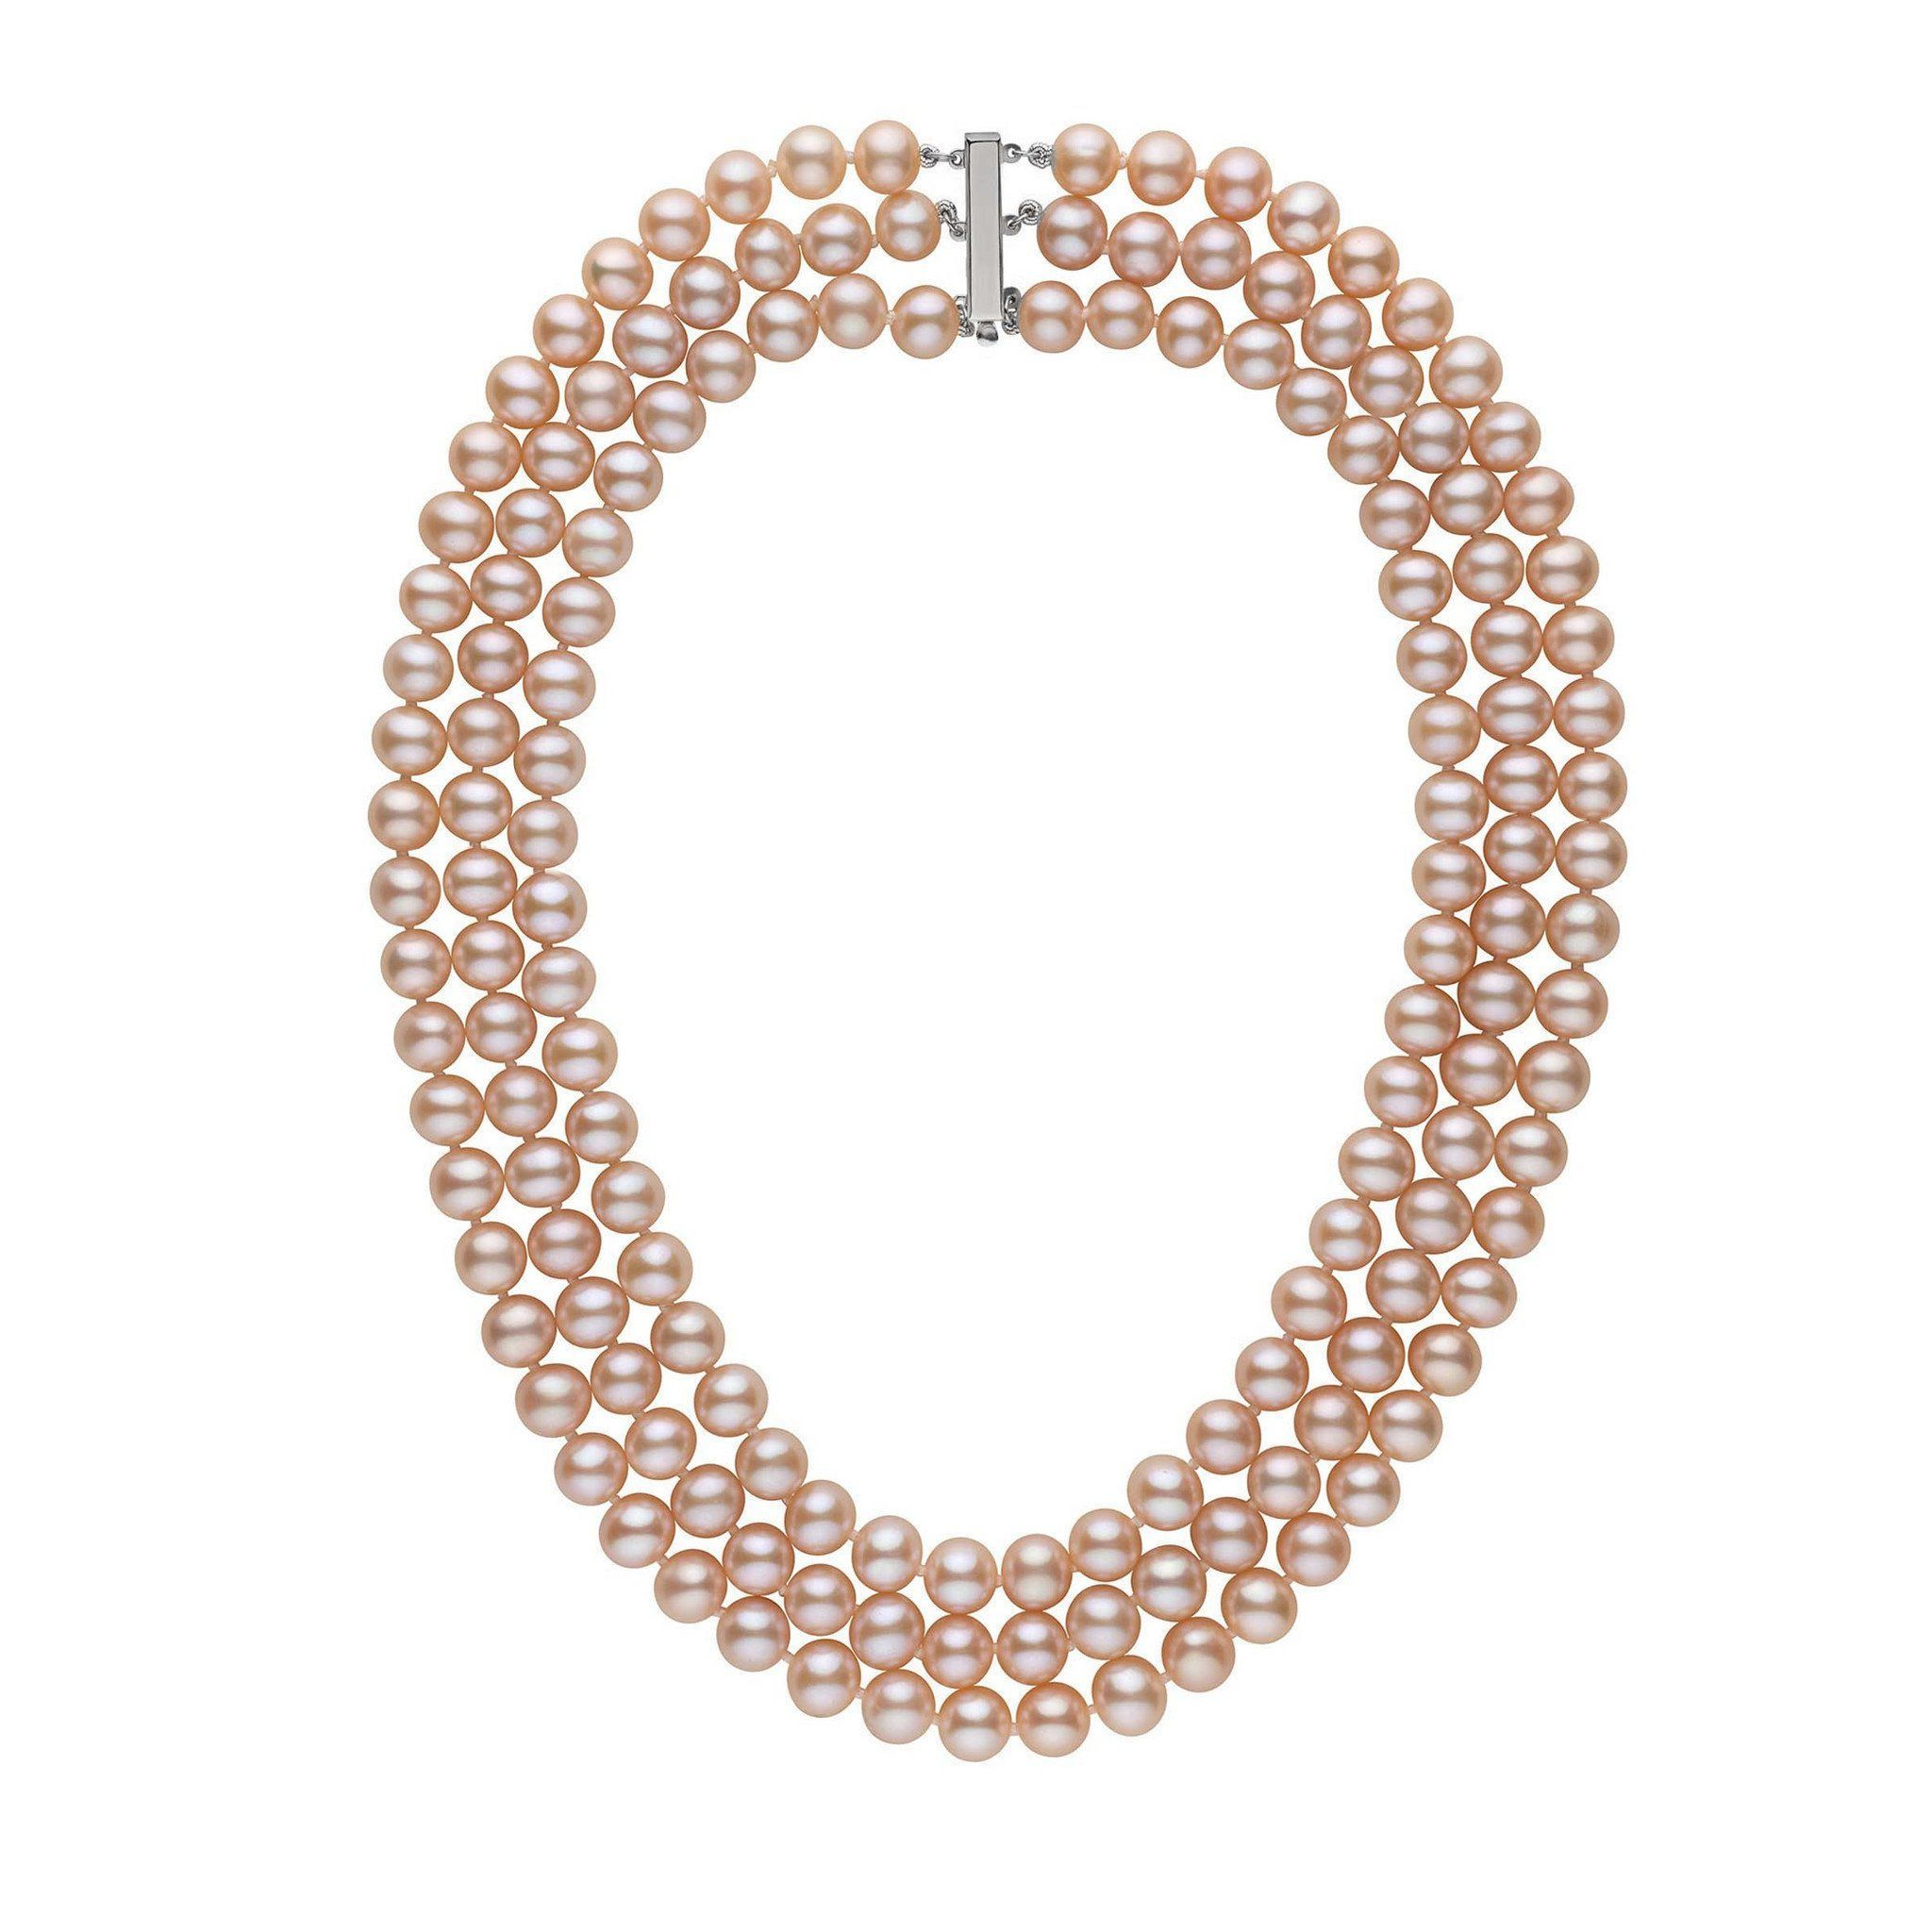 Triple Strand 8.5-9.0 mm AAA Pink to Peach Freshwater Cultured Pearl Necklace by Pearl Paradise